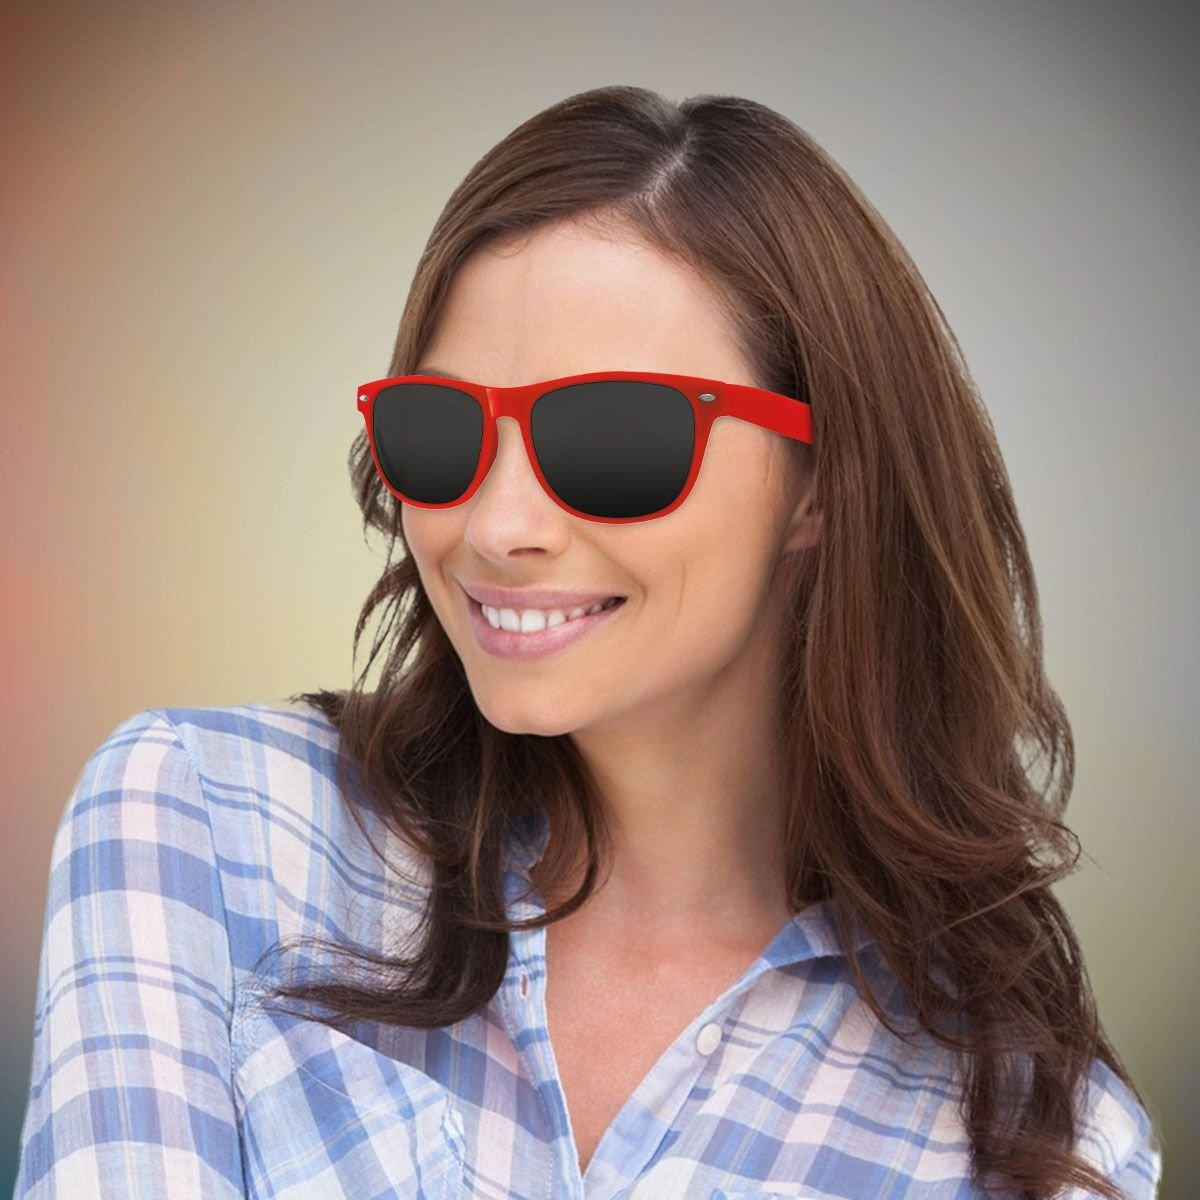 551aefd87 Cheap Red X Sunglasses, find Red X Sunglasses deals on line at ...